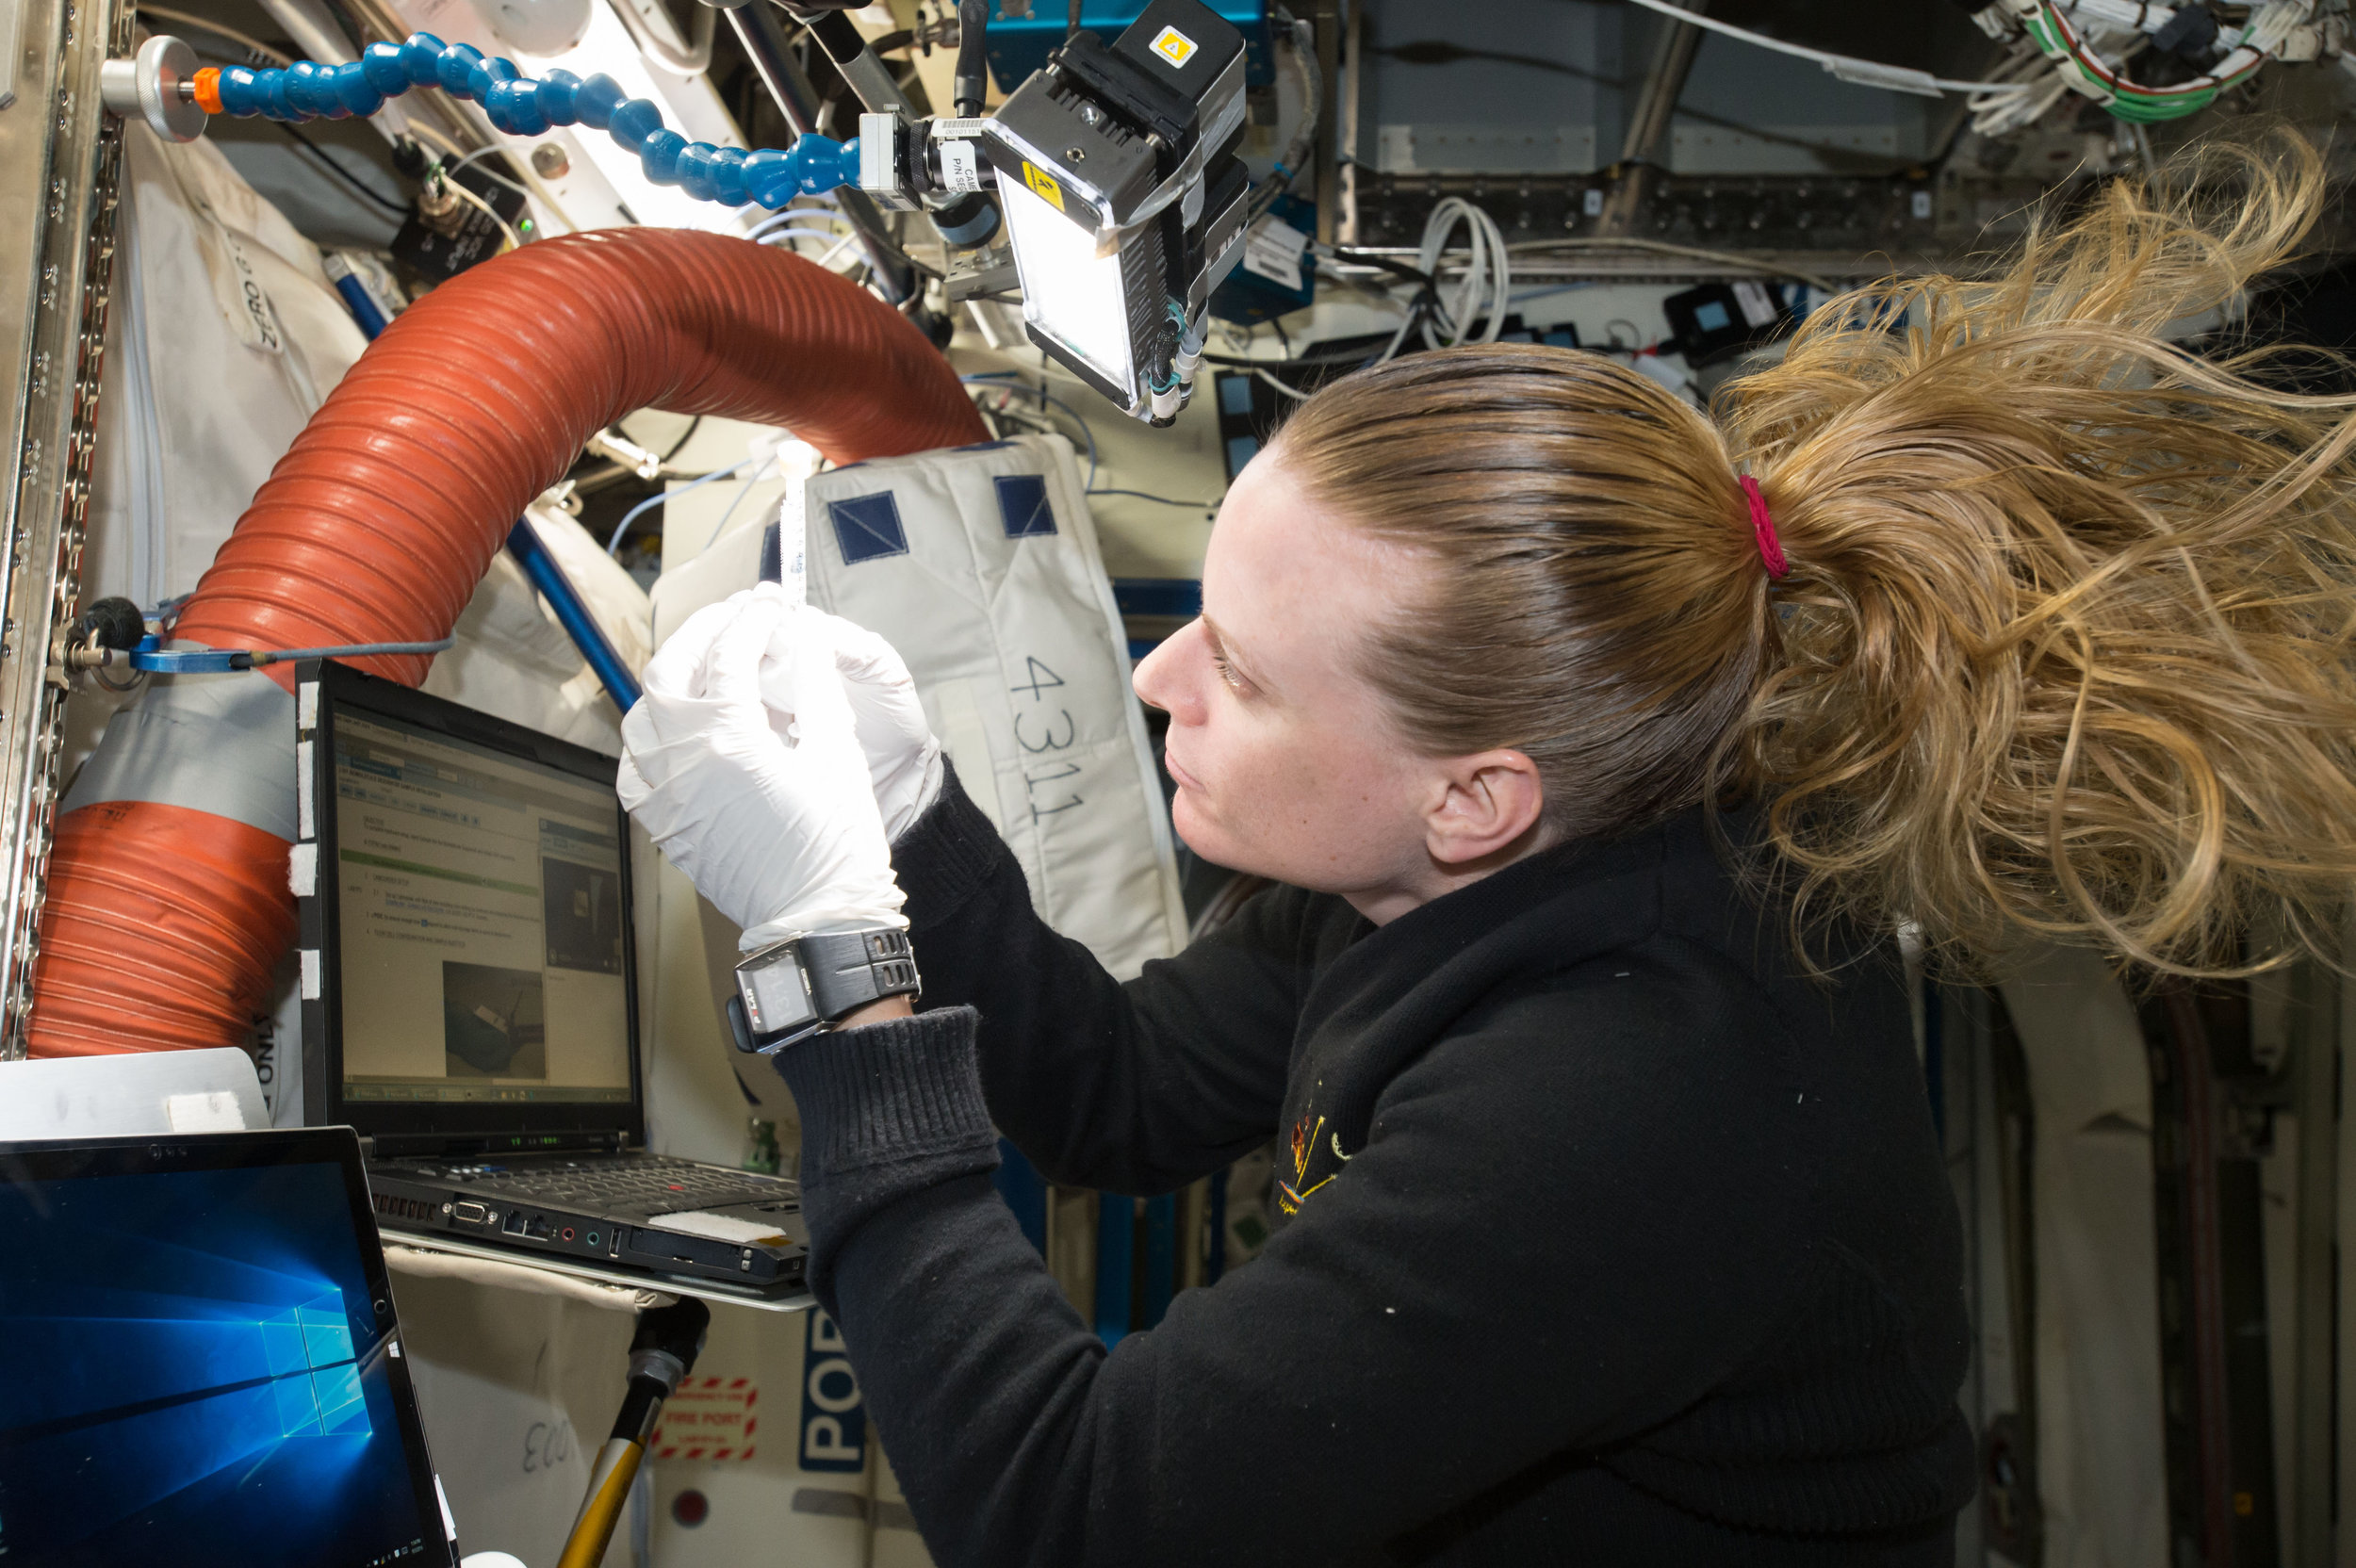 Aboard the International Space Station, NASA astronaut Kate Rubins checks a sample for air bubbles prior to loading it in the biomolecule sequencer.When Rubins' expedition began, zero base pairs of DNA had been sequenced in space. Within just a few weeks, she and the Biomolecule Sequencer team had sequenced their  one billionth base of DNA on the orbiting laboratory .